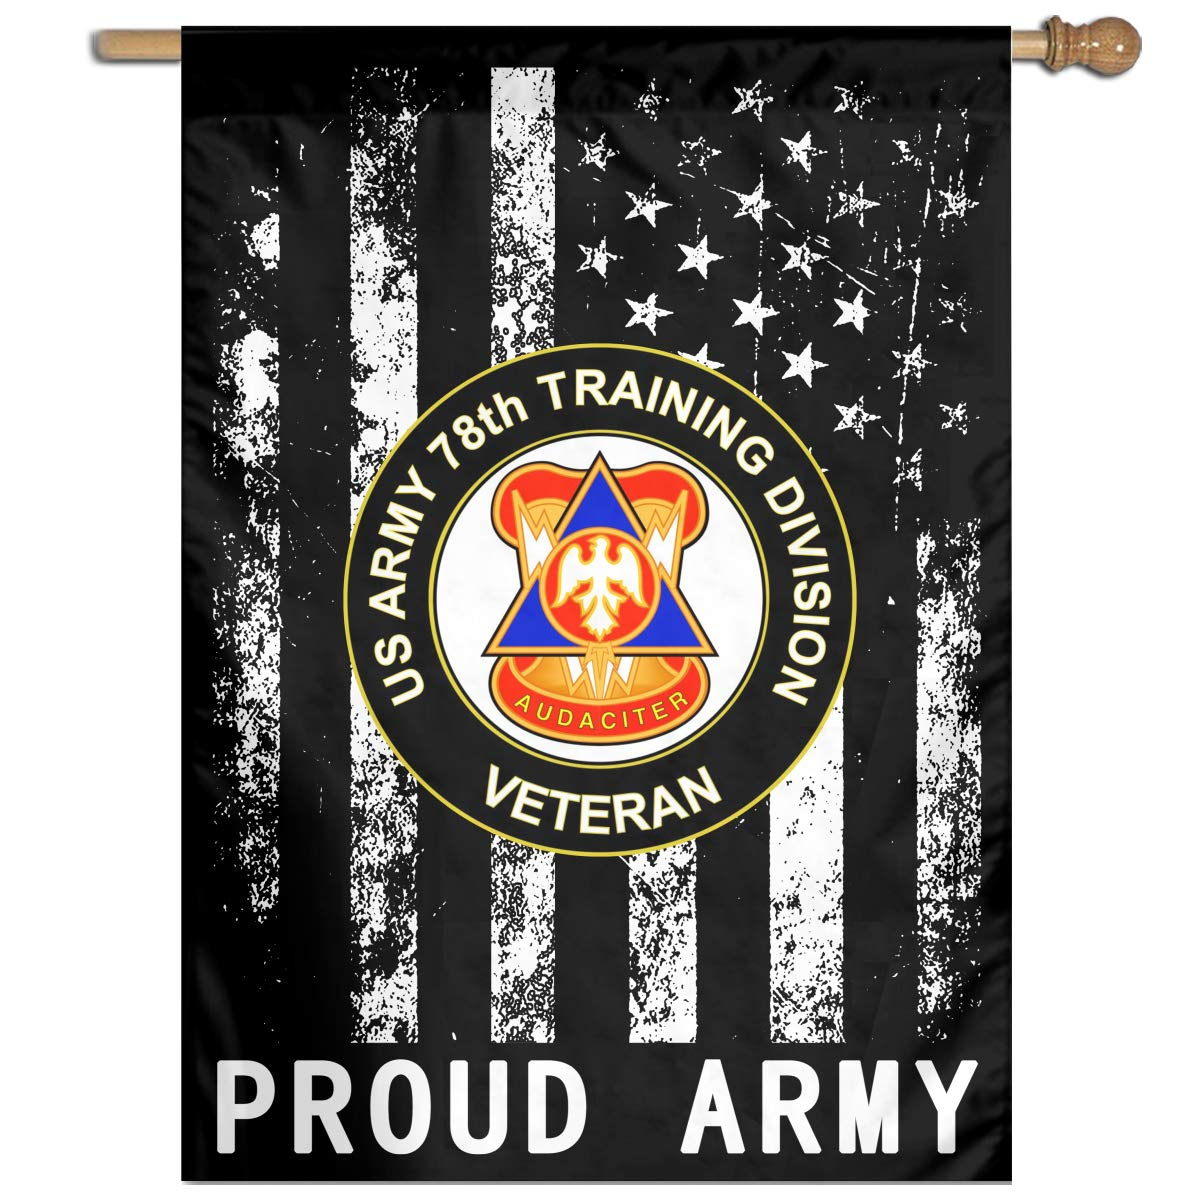 Amazon FFFlag Er US Army 78th Training Division Veteran Welcome Garden Flag Yard Family 27x37 Sports Outdoors